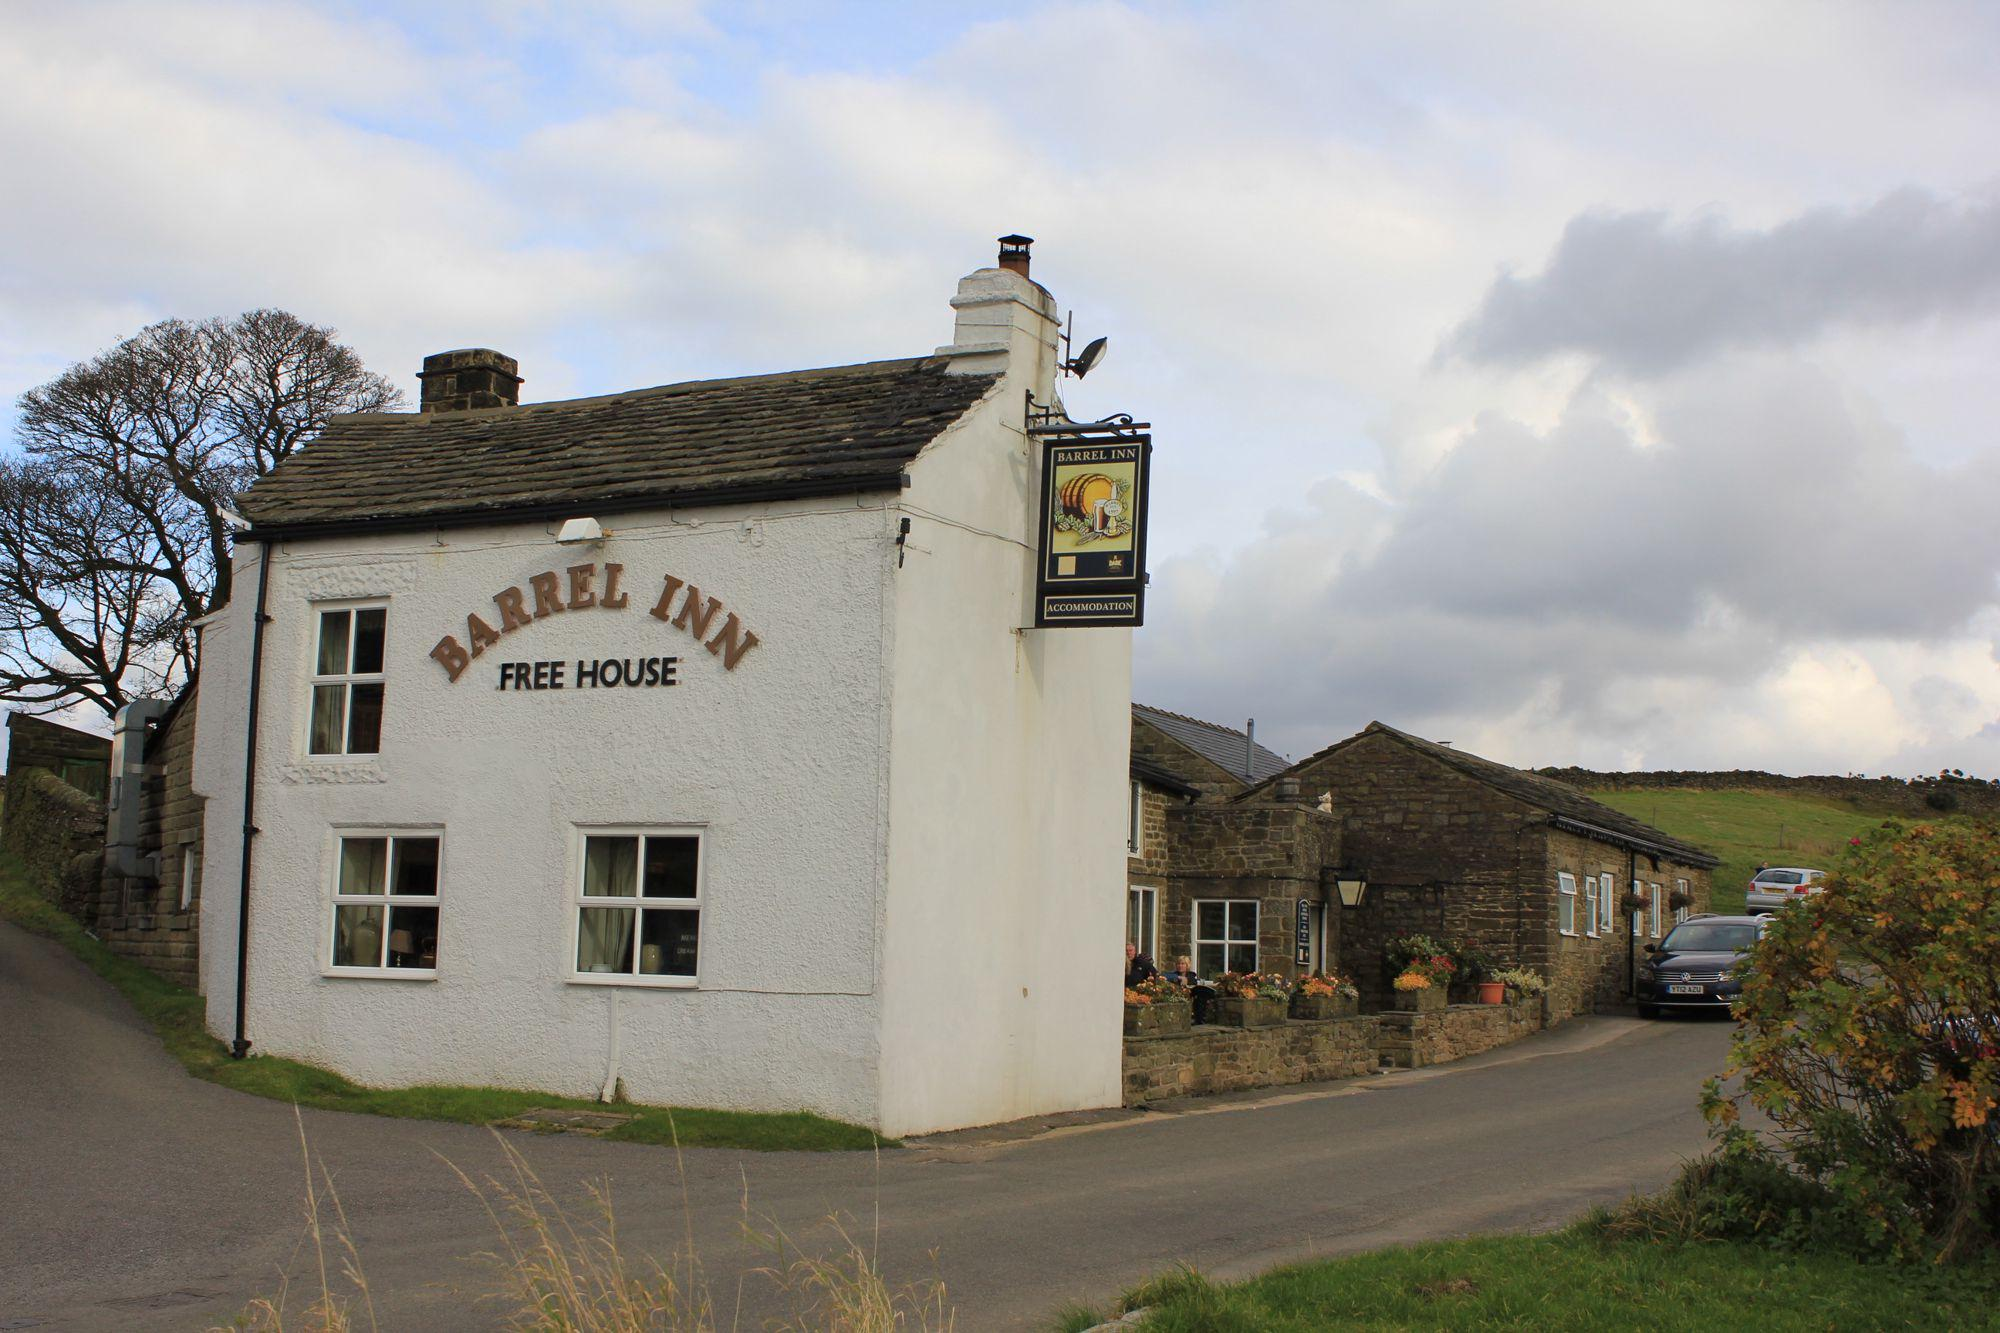 Hotels in Derbyshire holidays at Cool Places